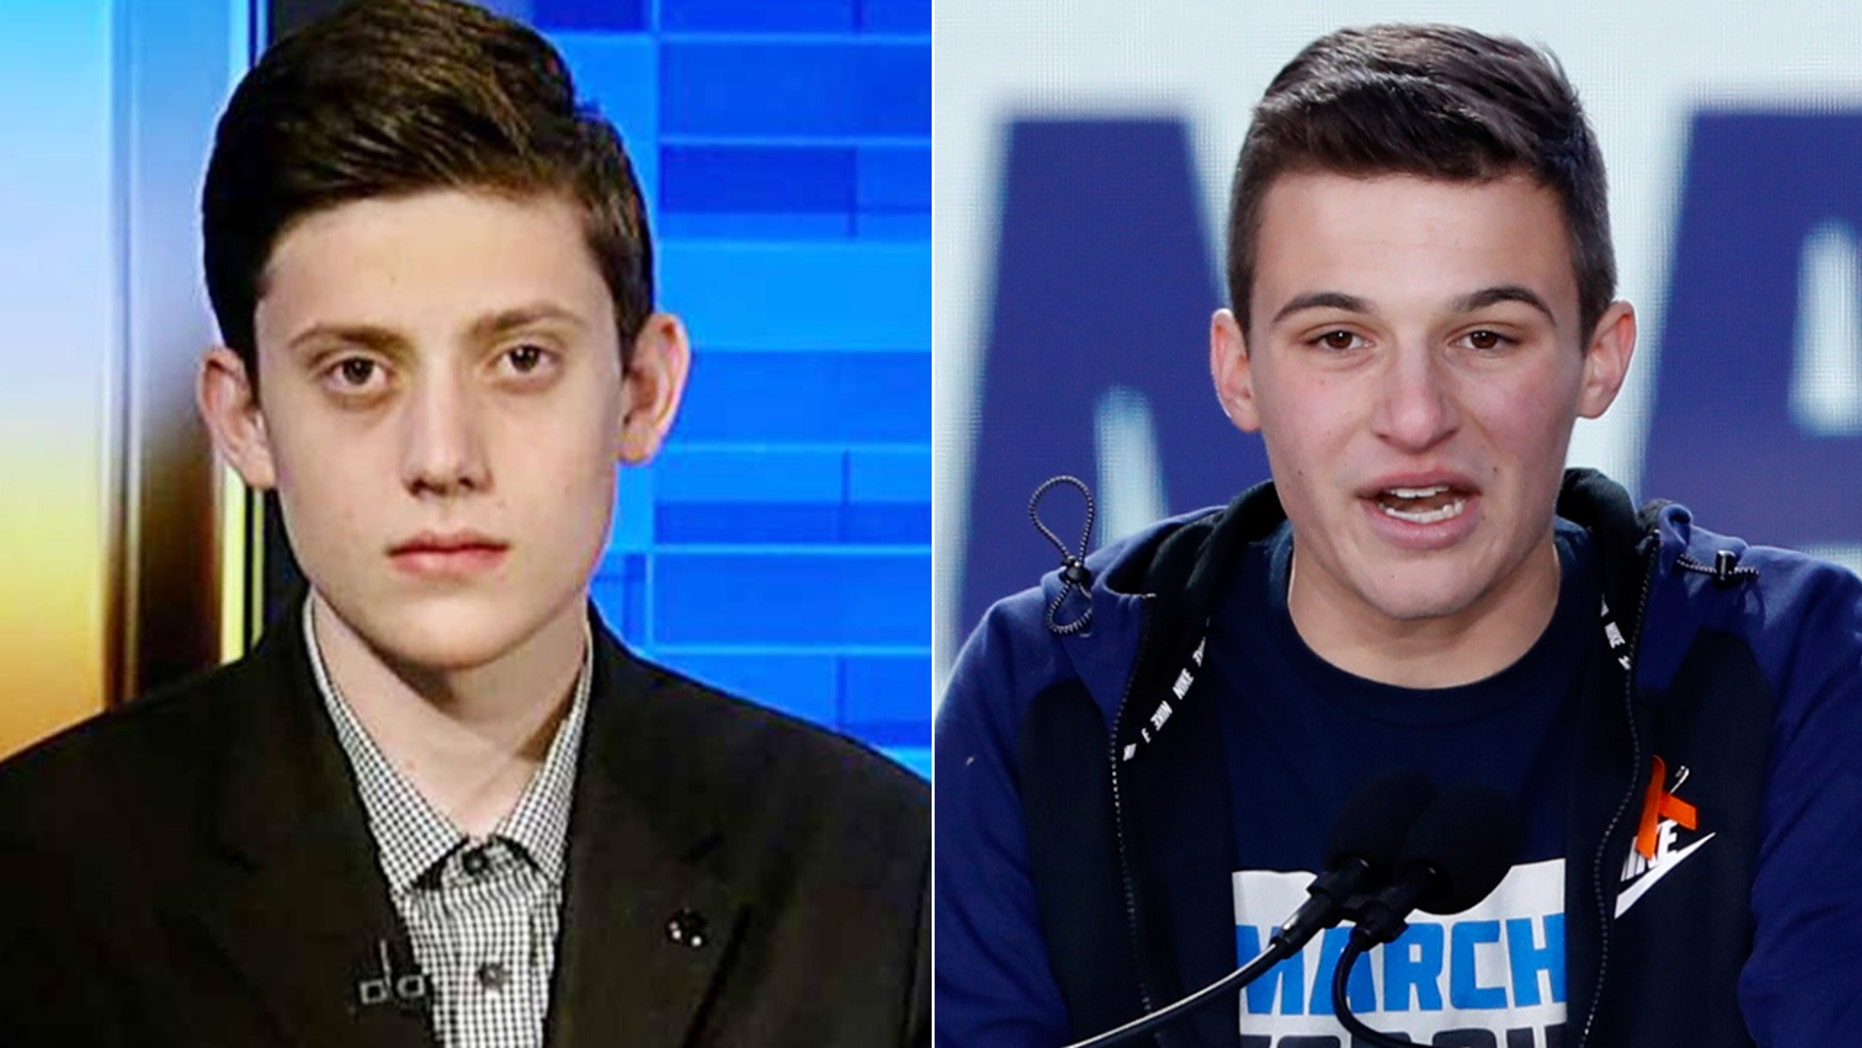 Kyle Kashuv, left, a Second Amendment-supporting student at the Parkland, Fla., high school, called for a debate with March for Our Lives organizer Cameron Kasky.